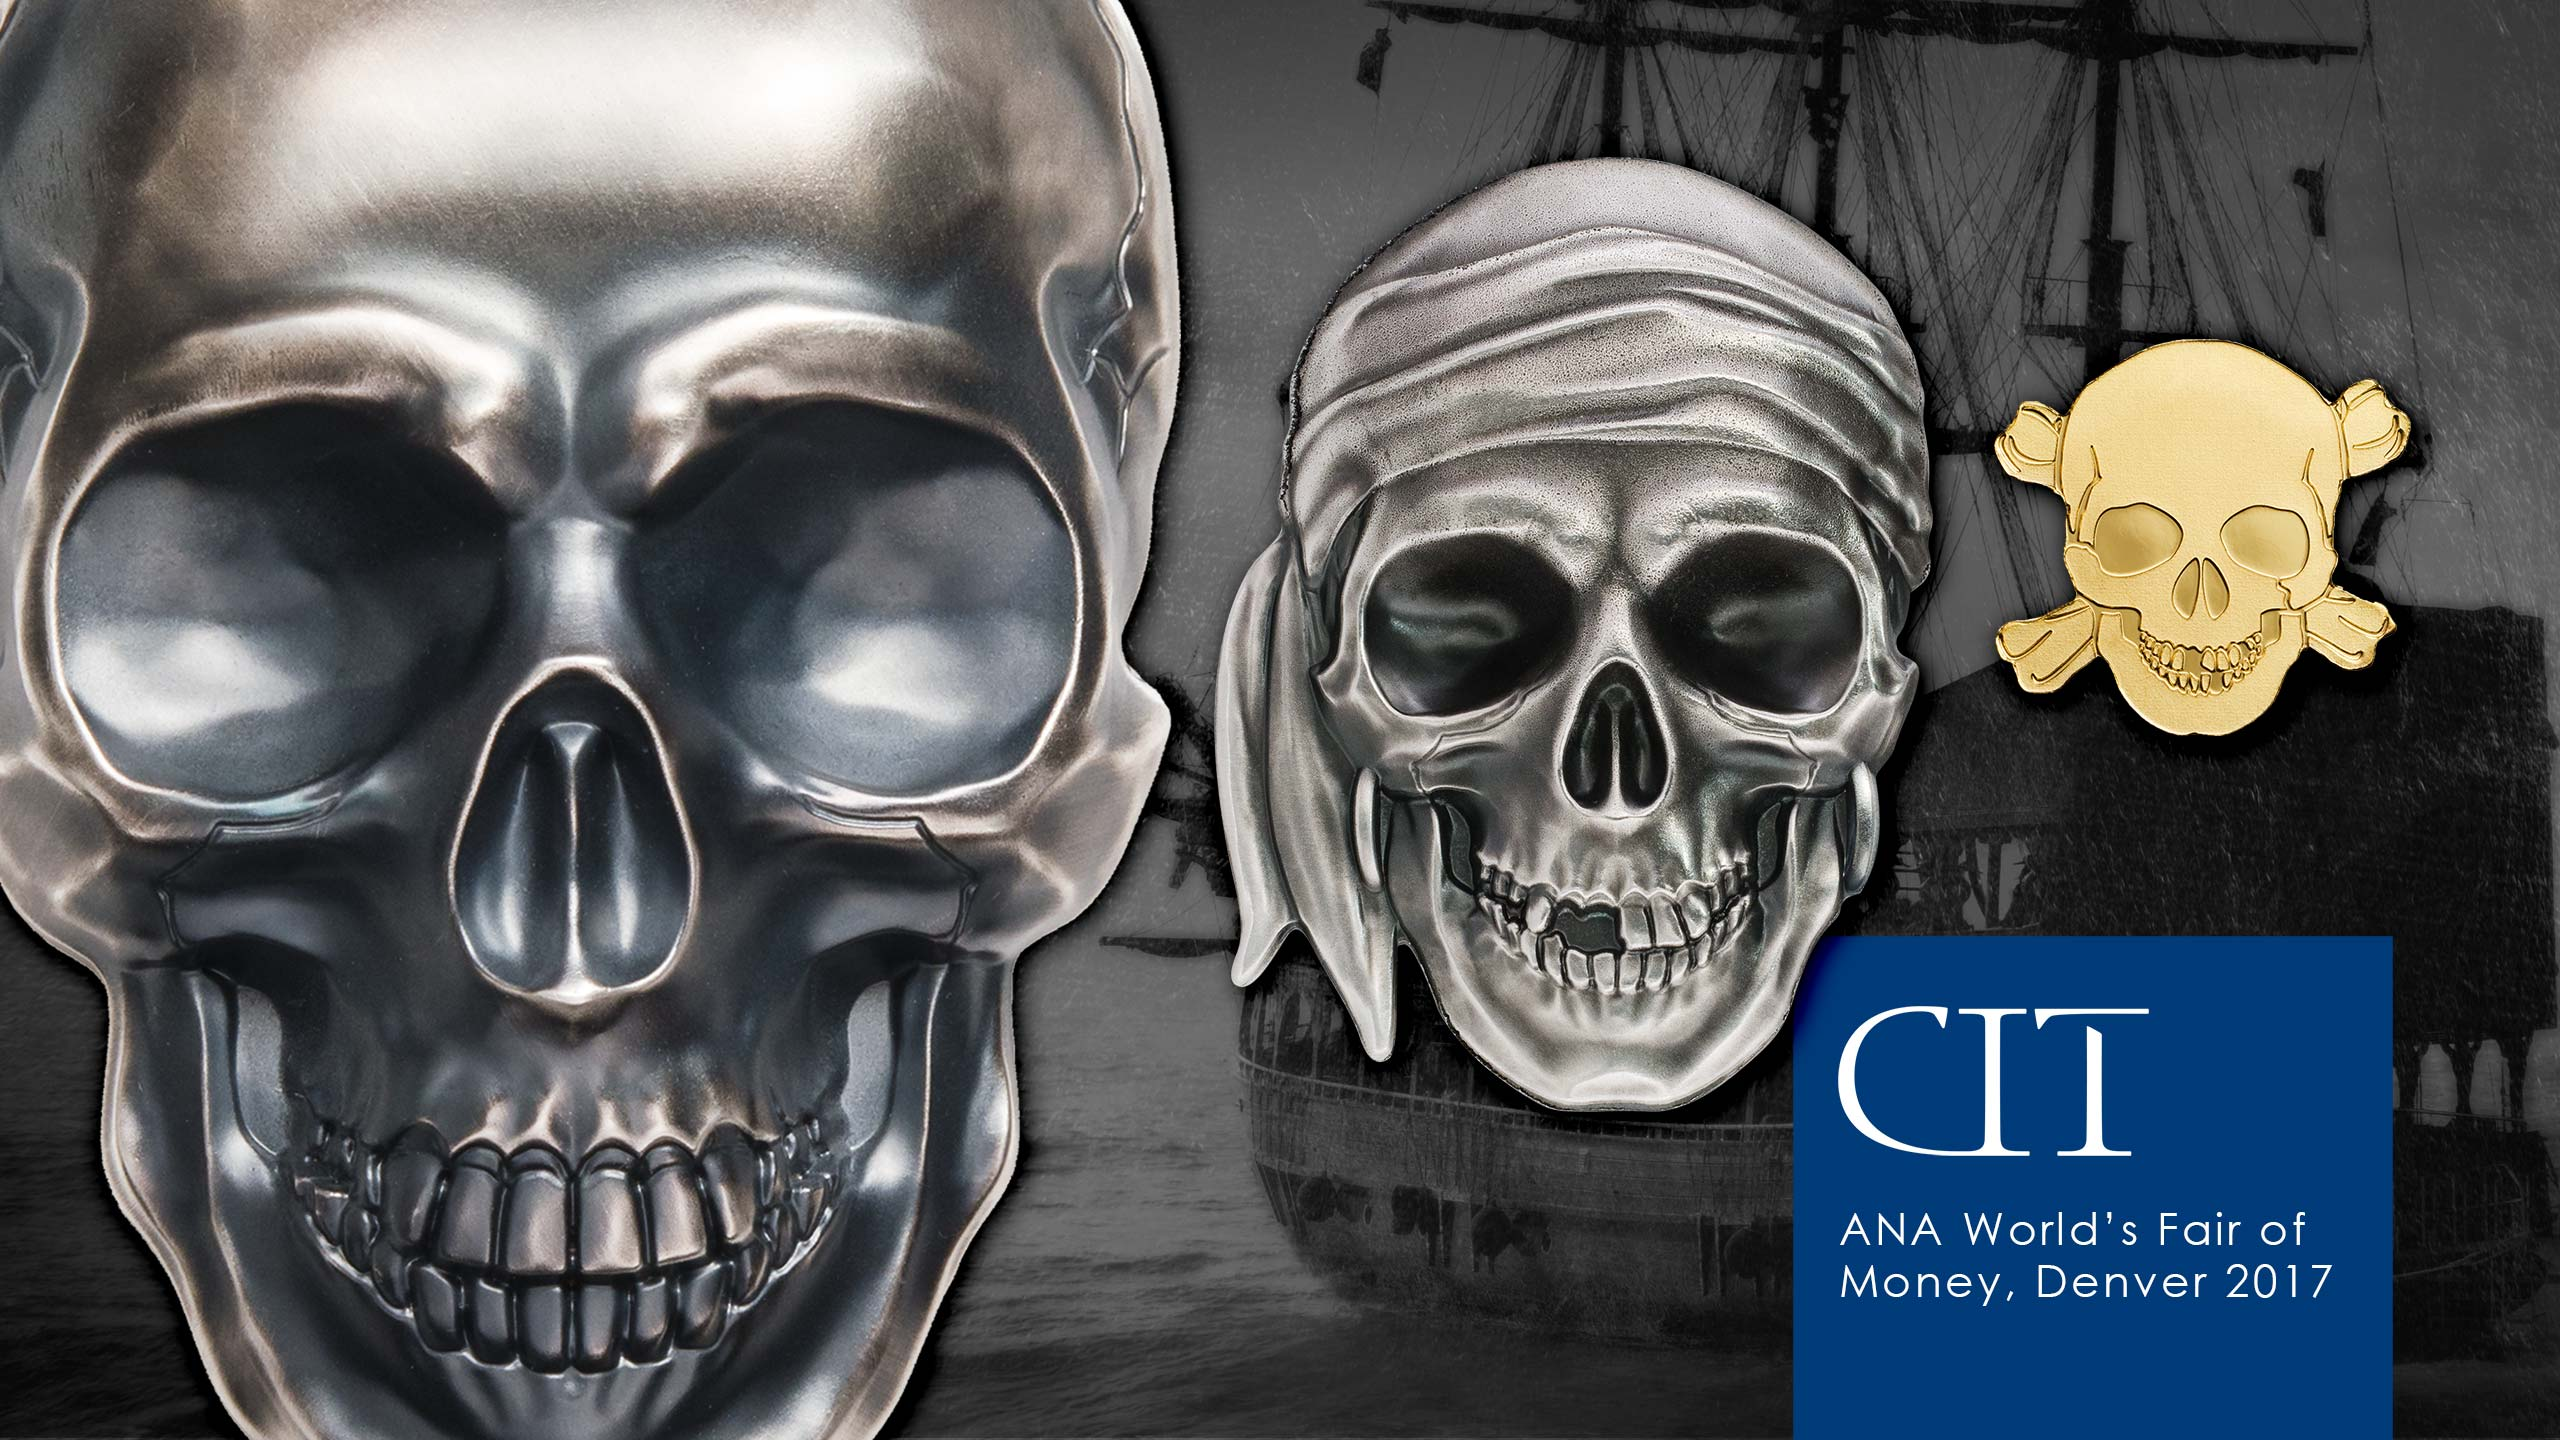 cit silver coin skulls for ana denver coin show 2017